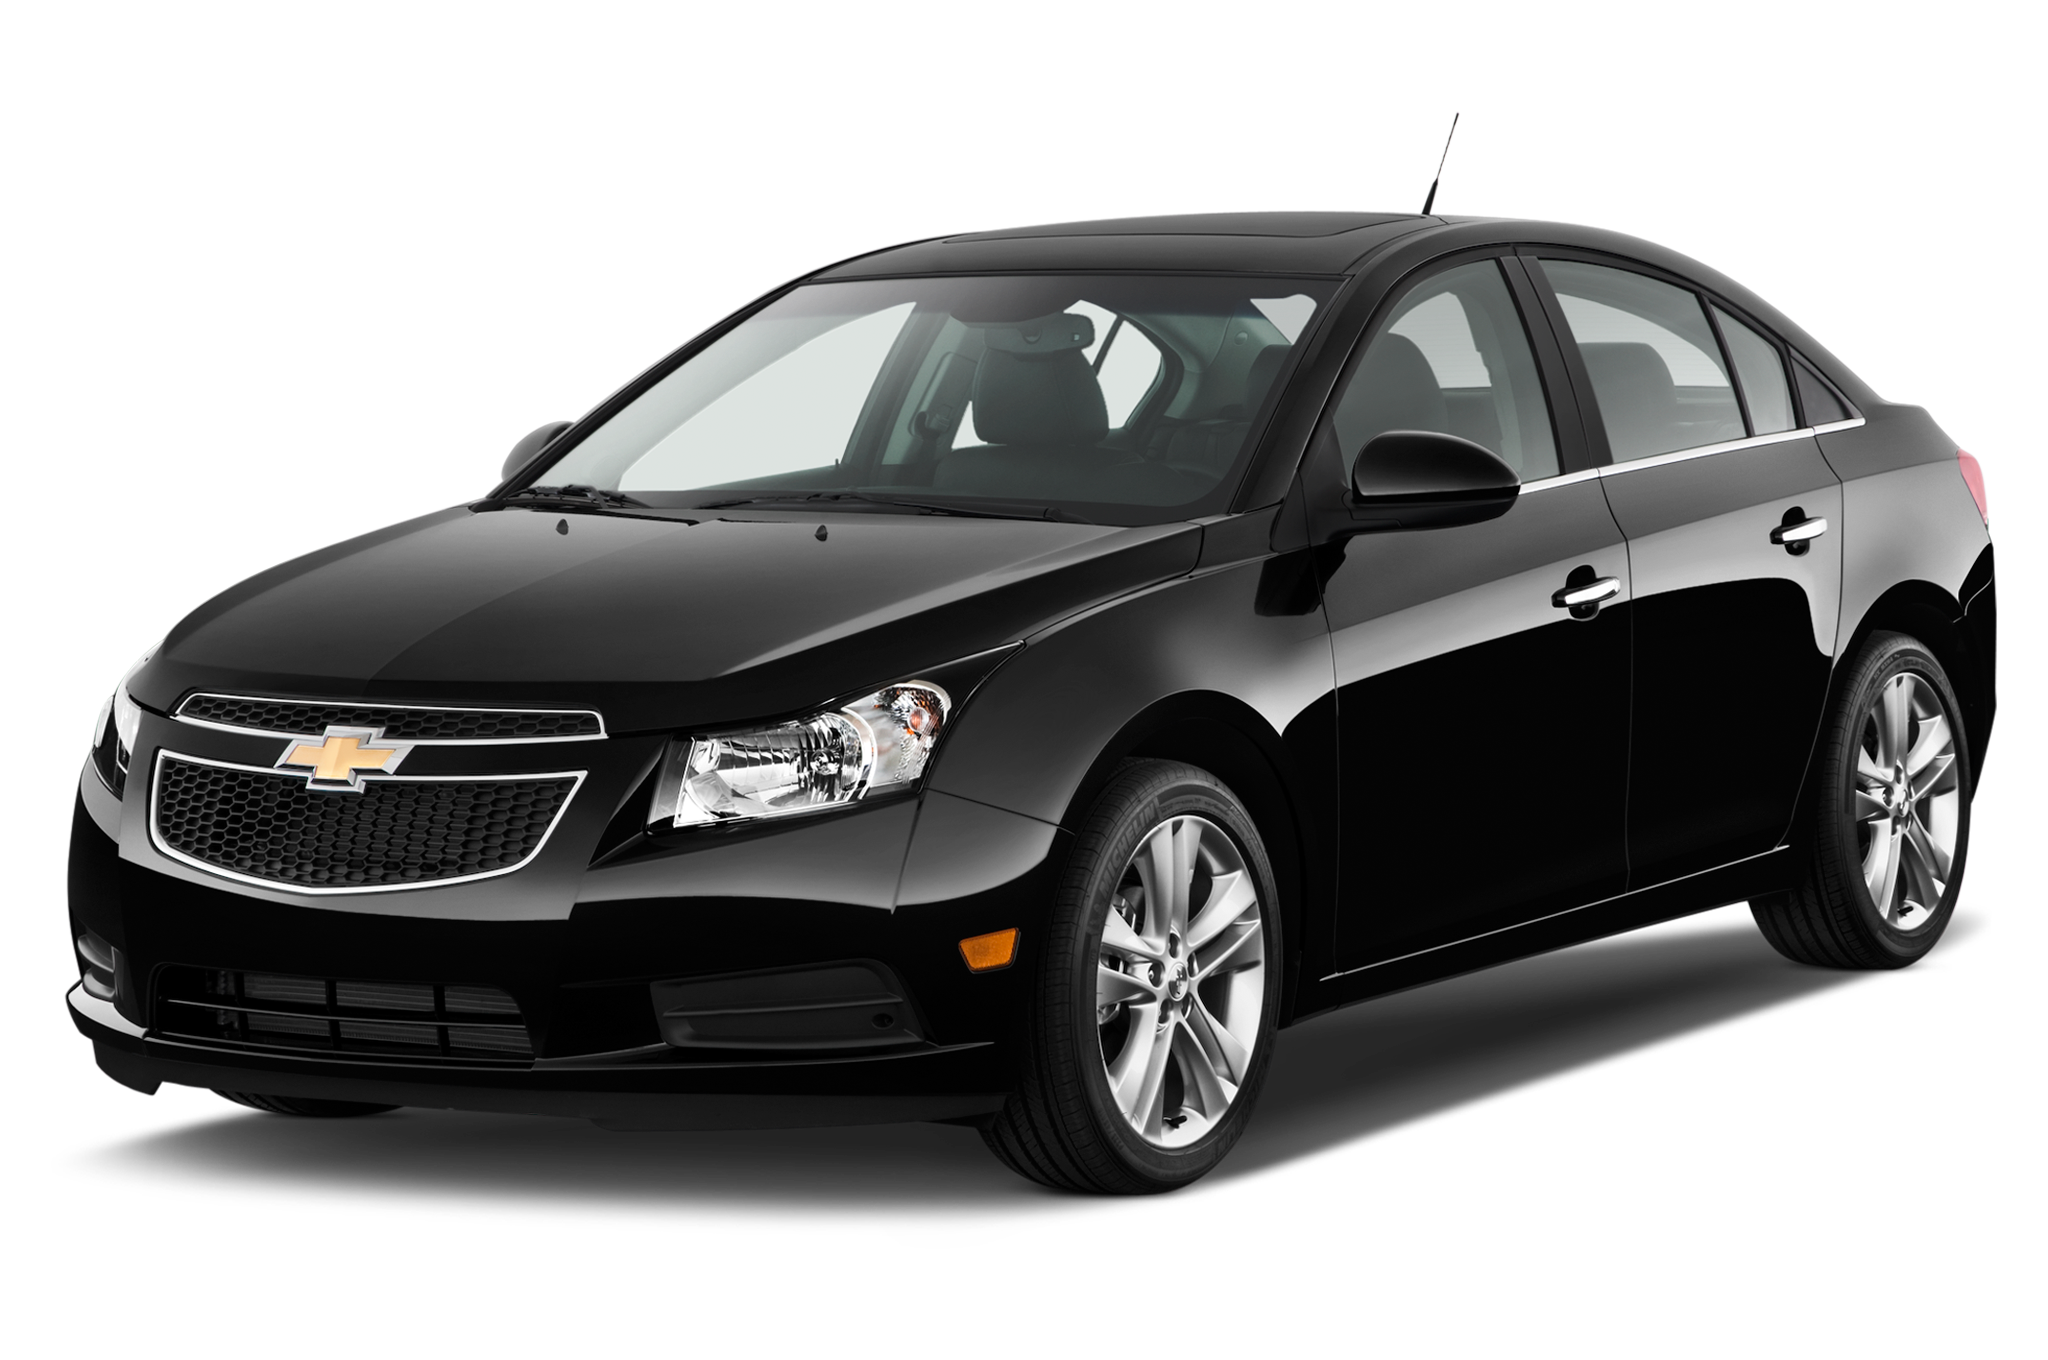 2012 chevrolet cruze eco mpg autos post. Black Bedroom Furniture Sets. Home Design Ideas